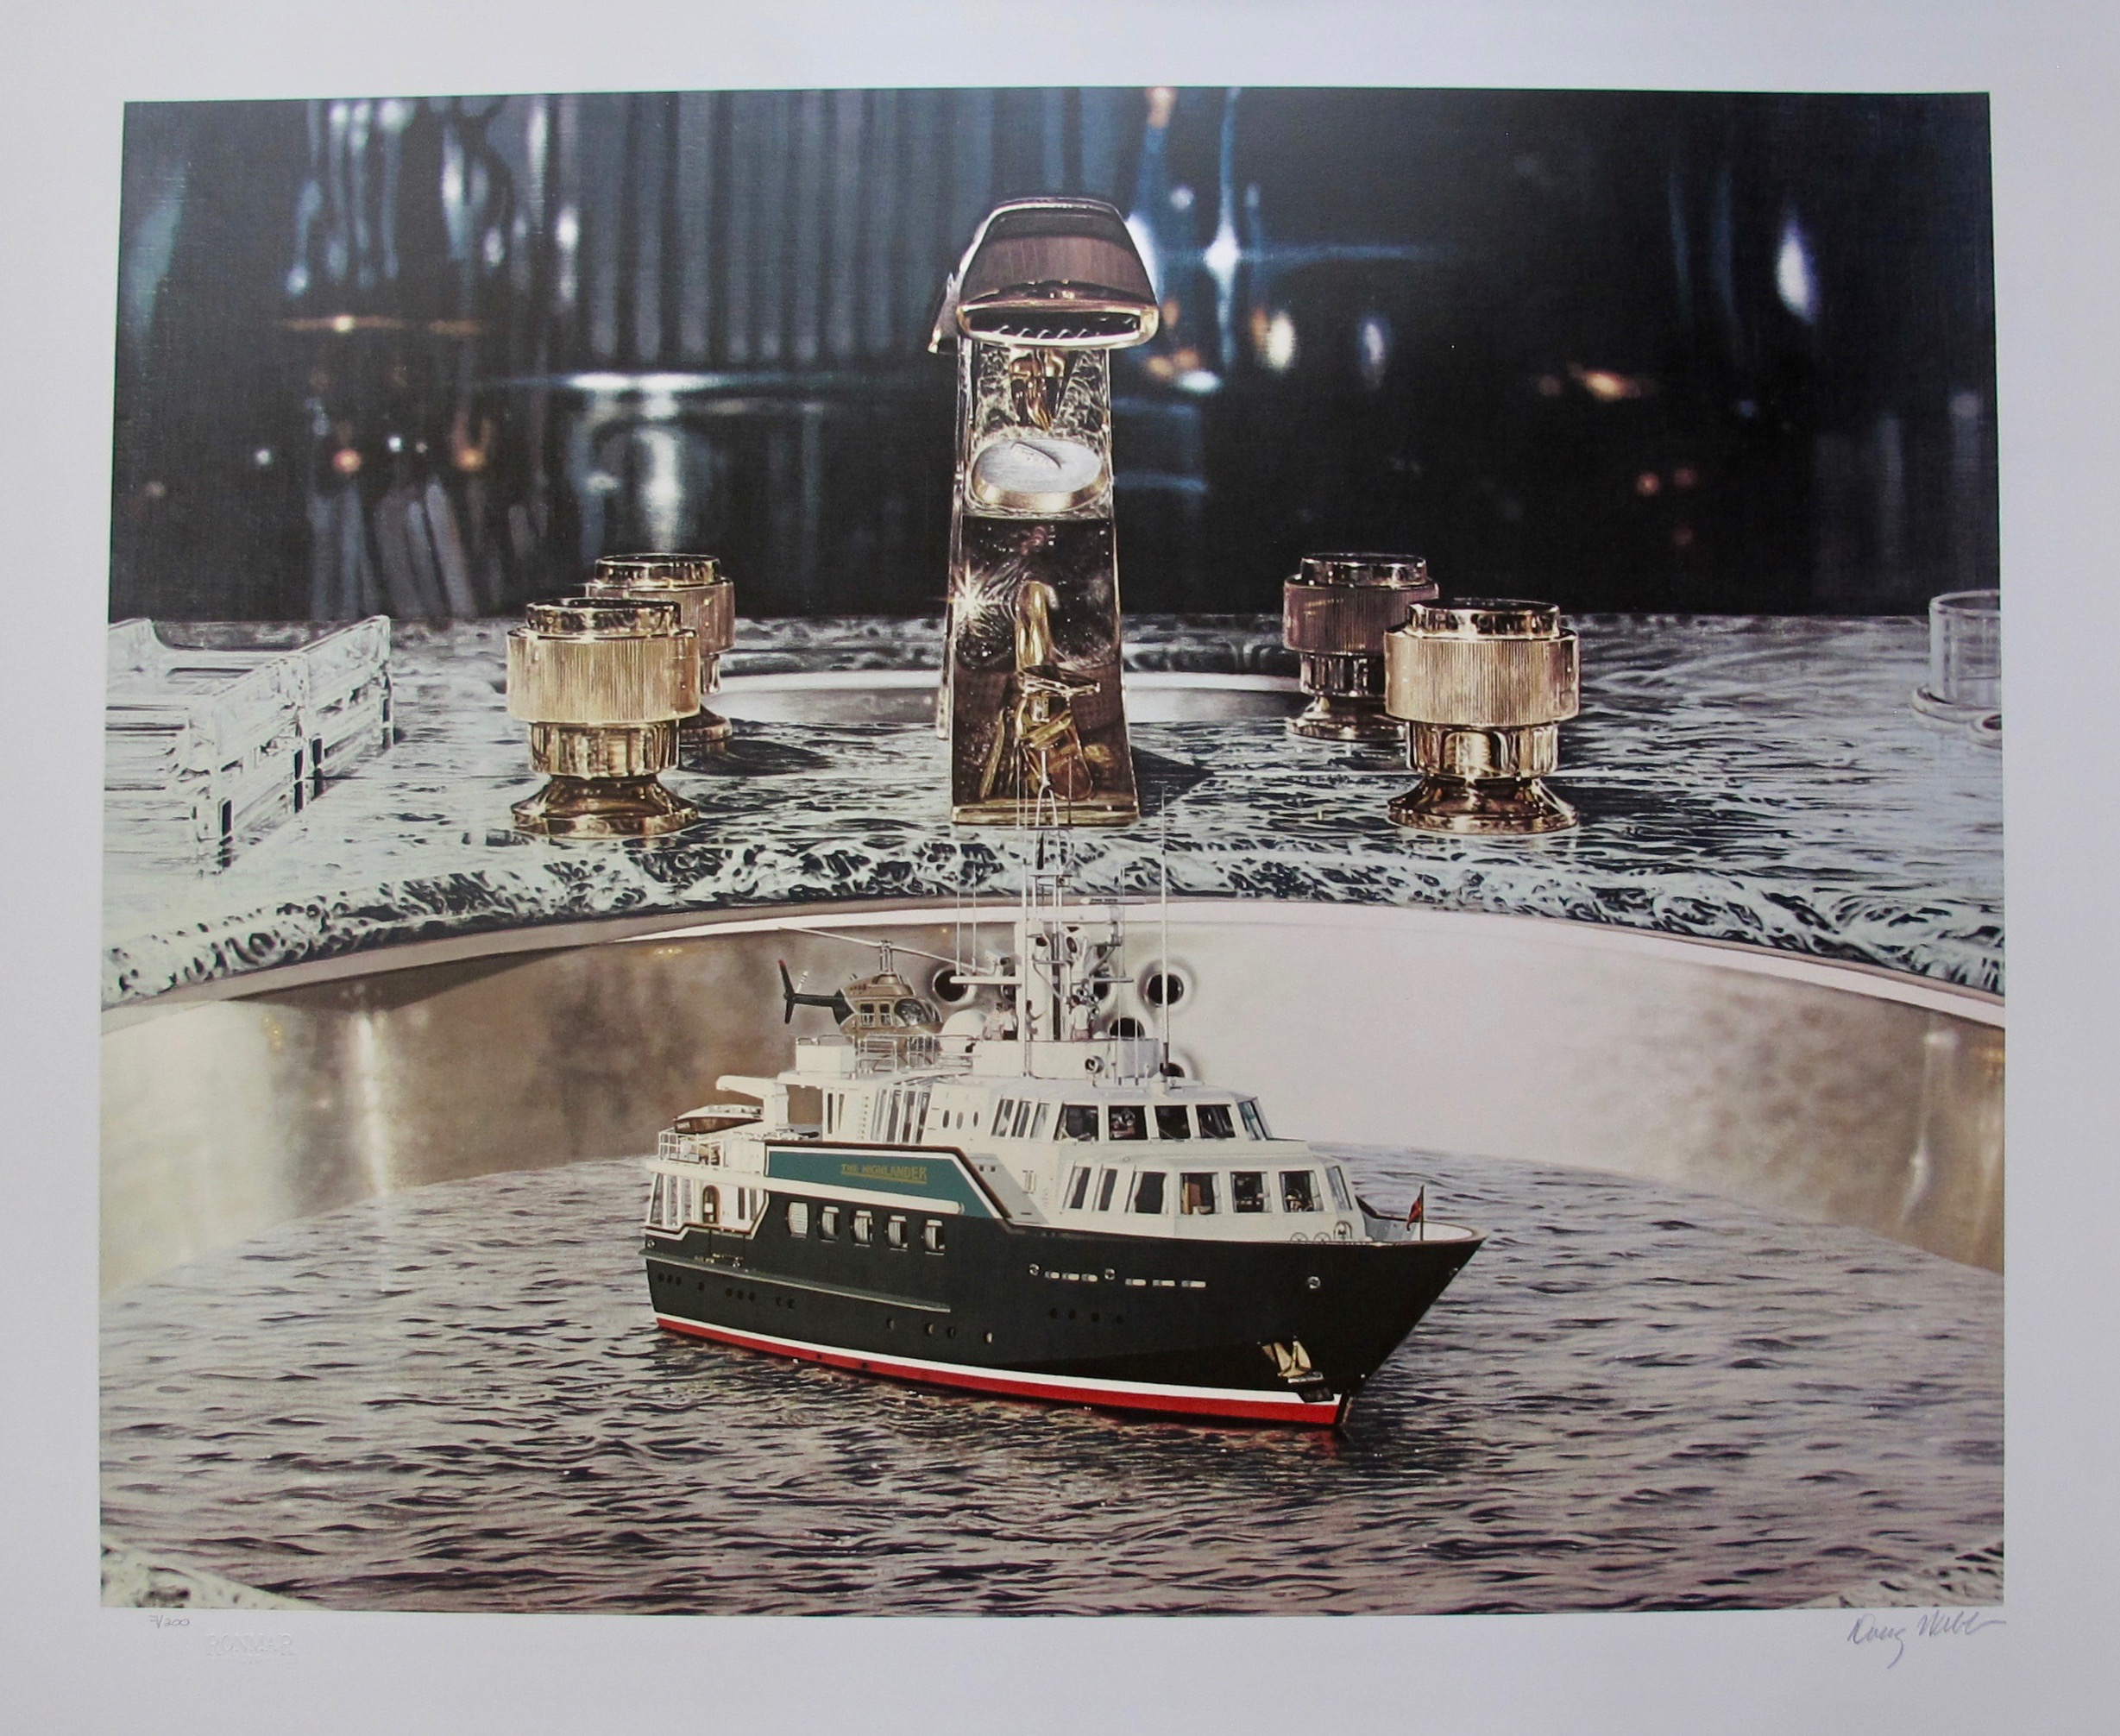 DOUG WEBB Yacht in Cold Running Water Hand Signed Limited Edition Silkscreen